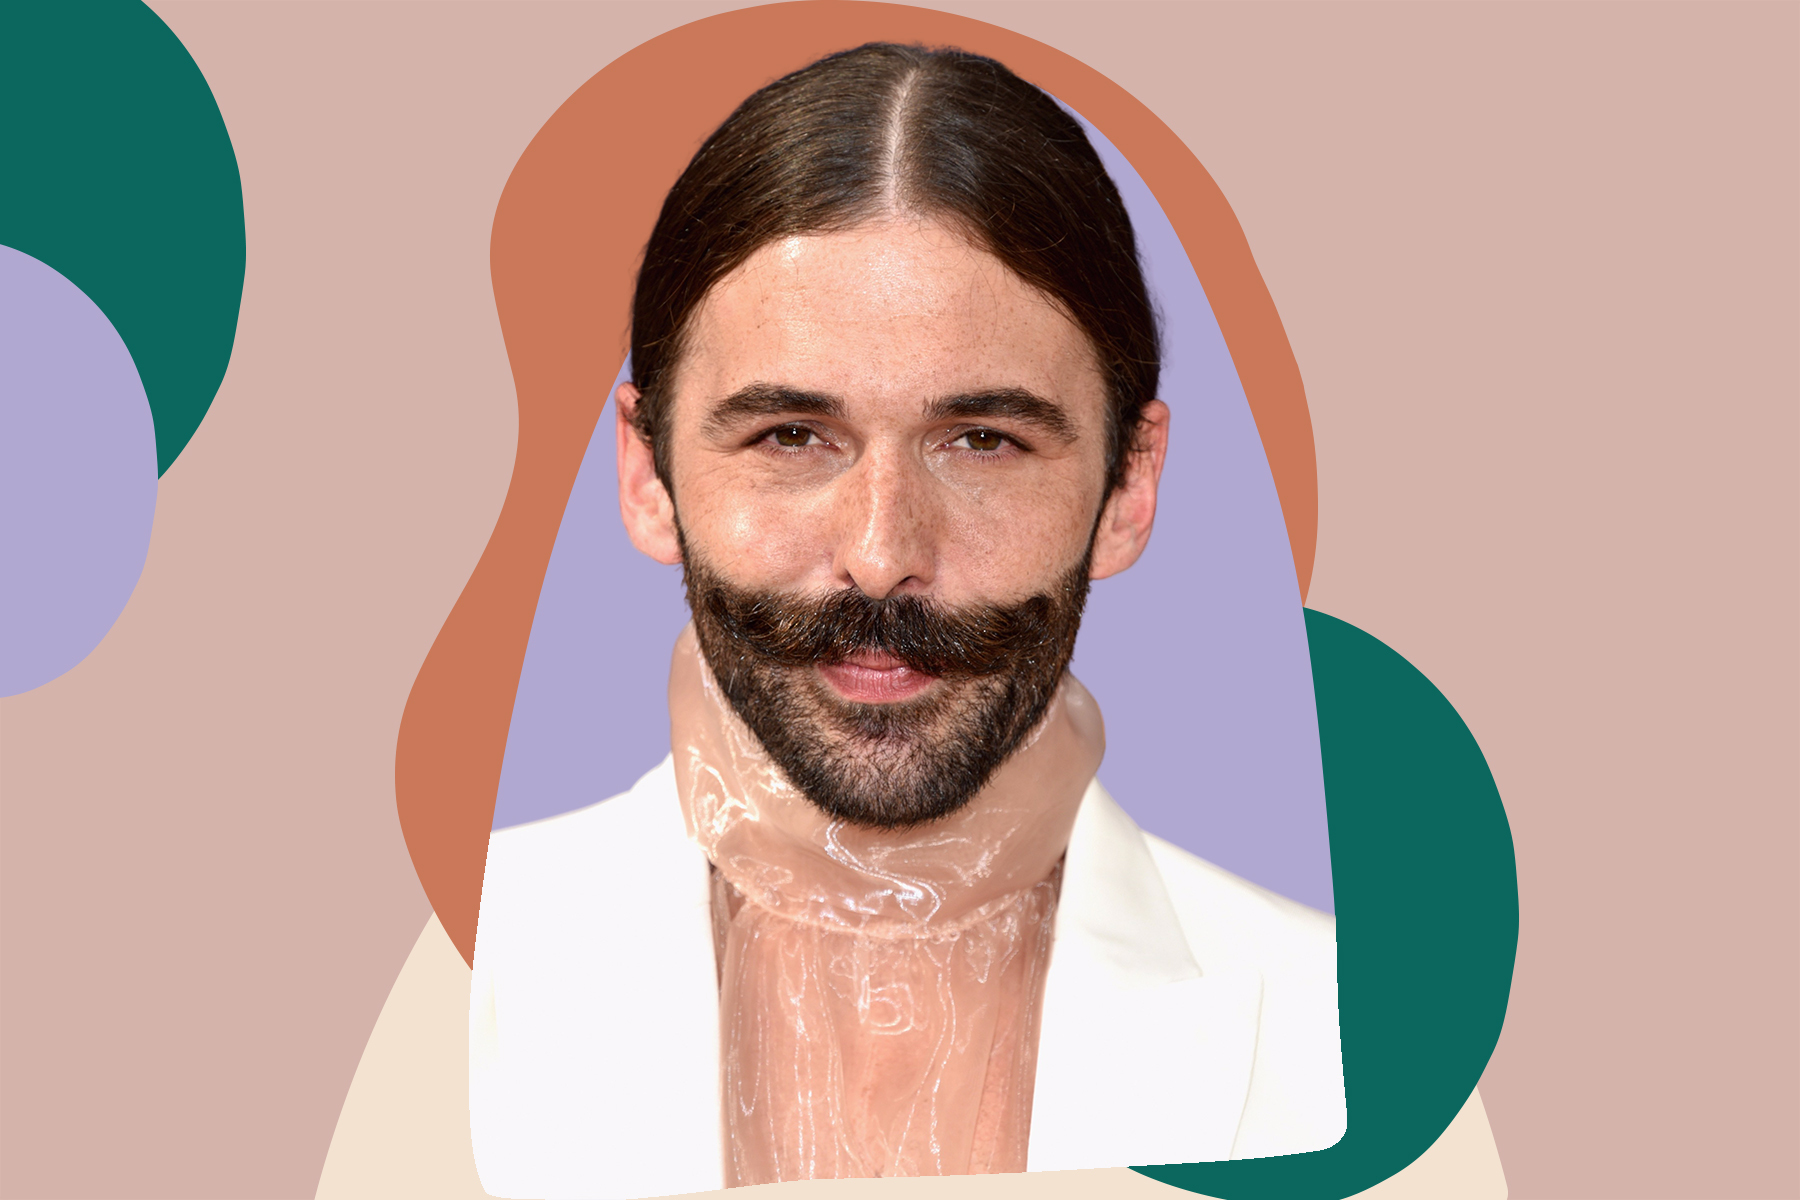 Jonathan Van Ness interview